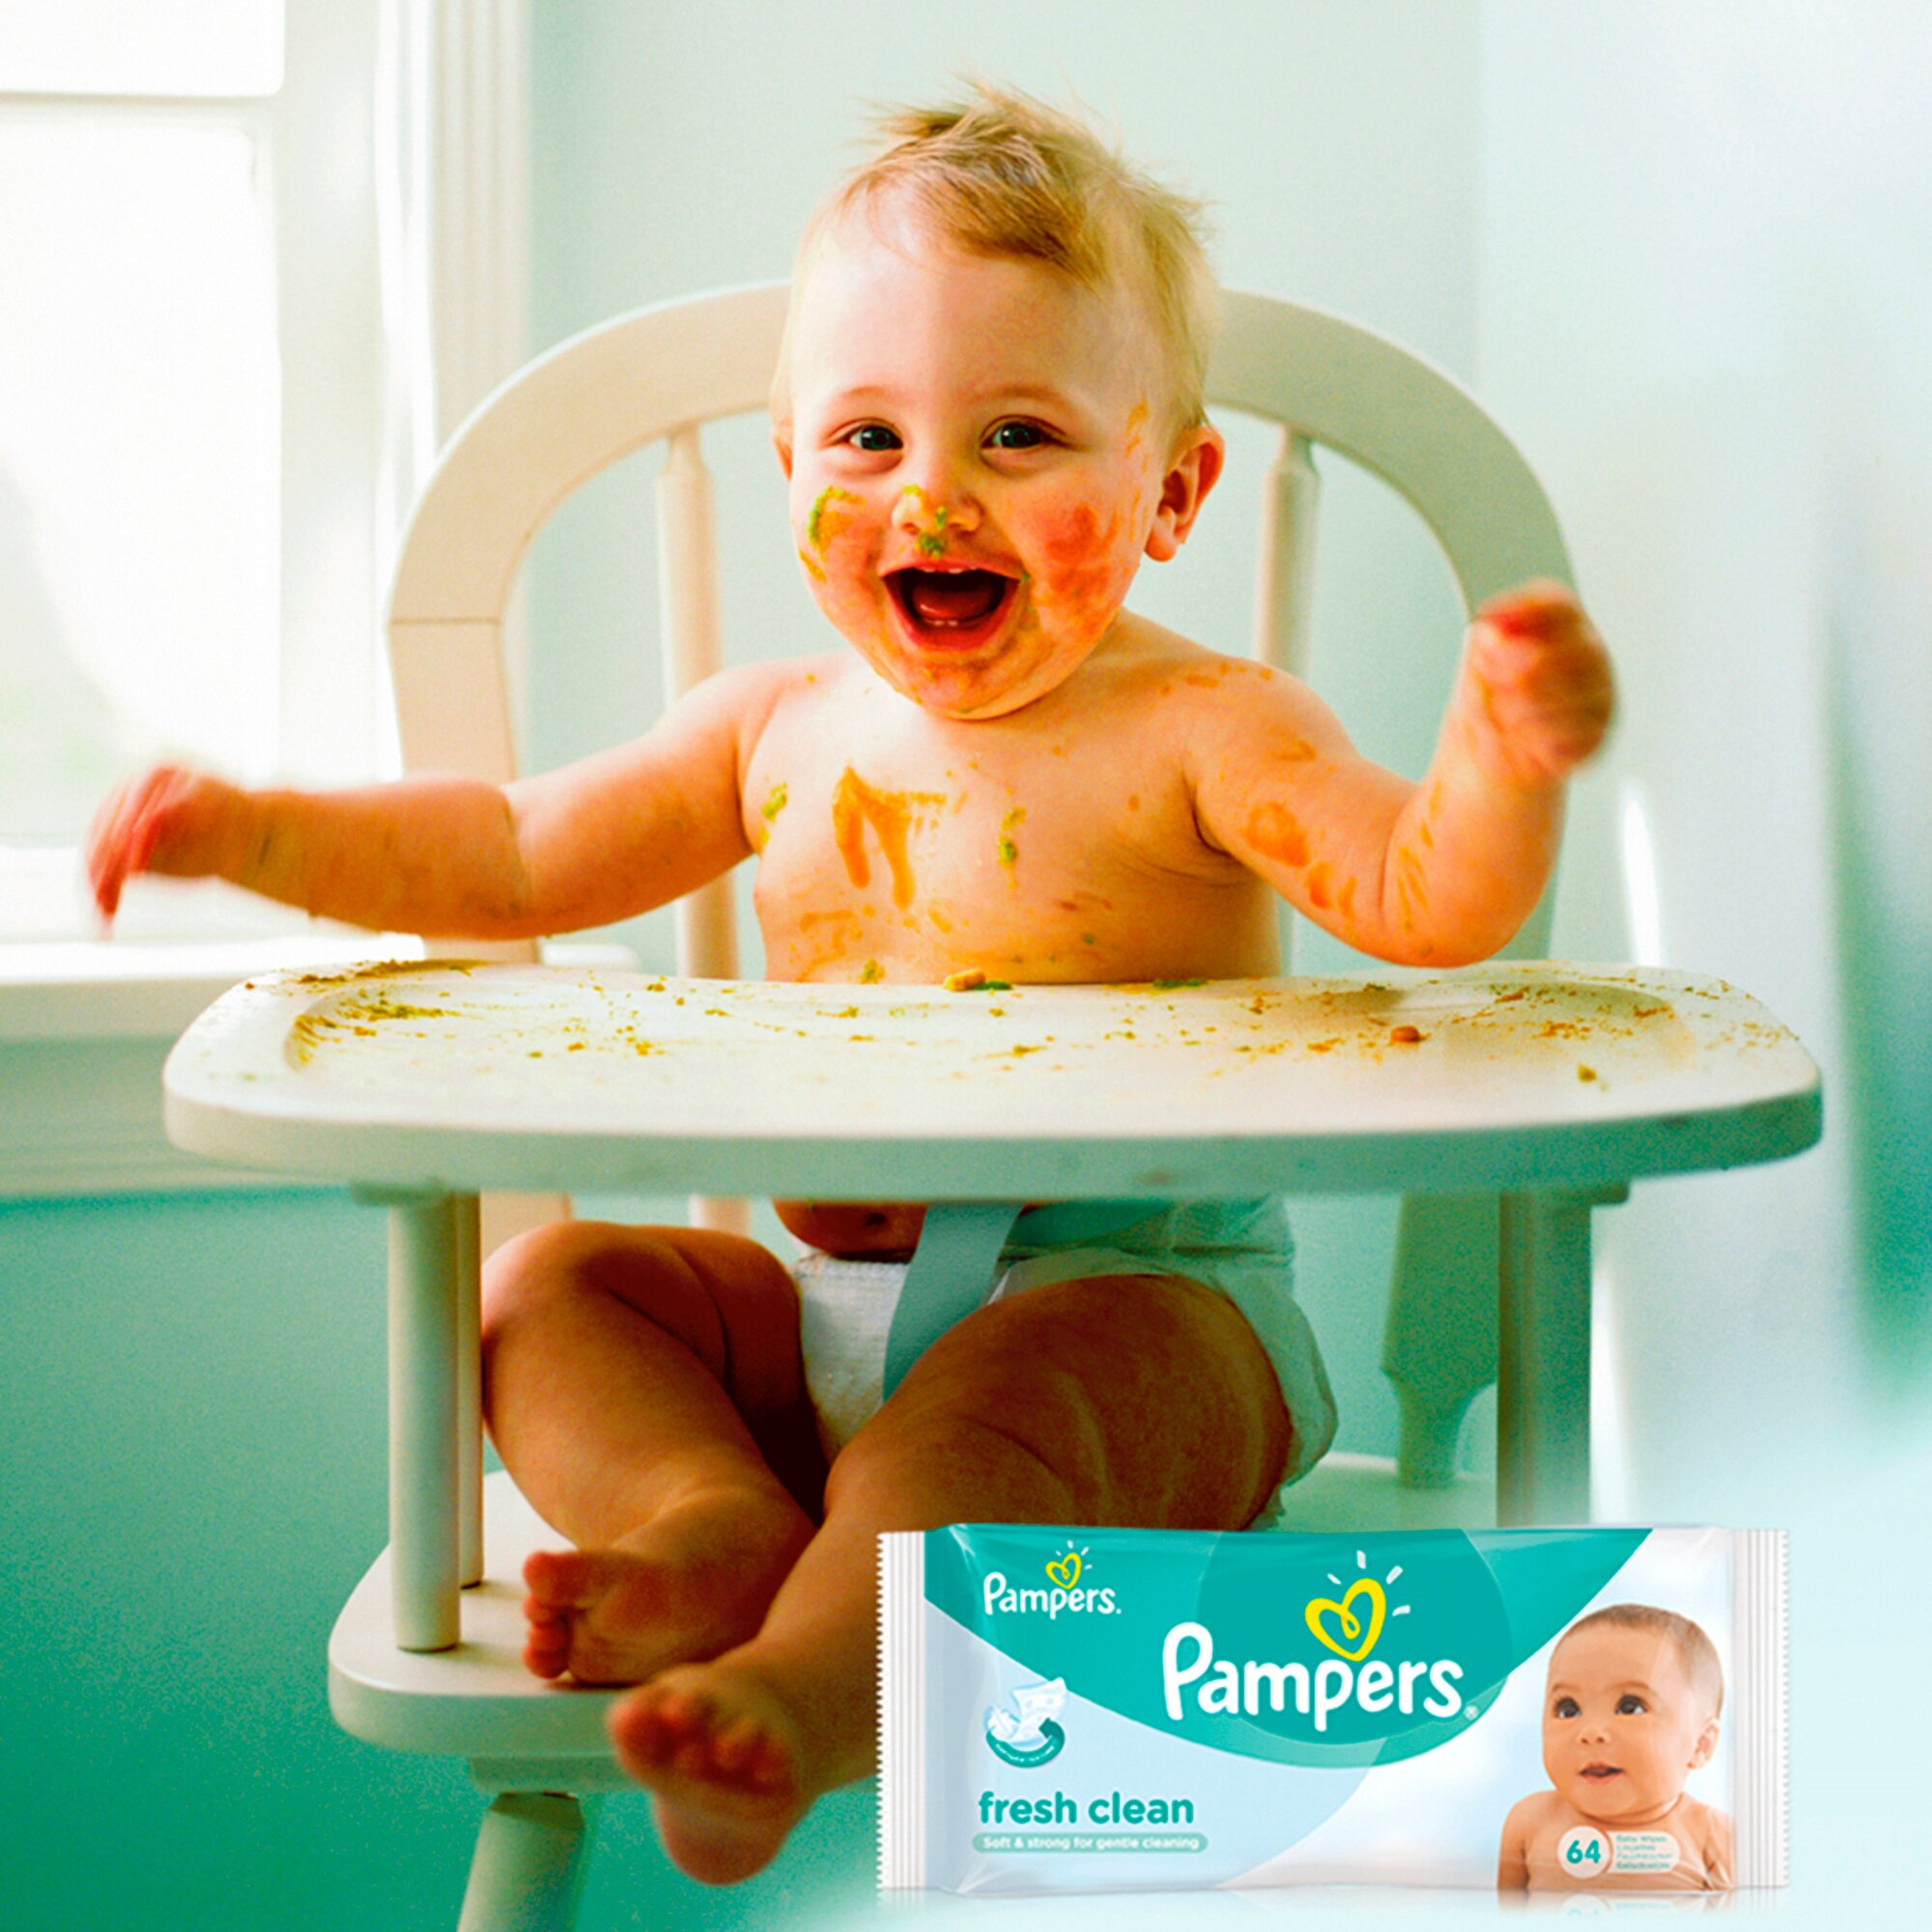 pampers-feuchttucher-fresh-clean-6er-pack-384-st-